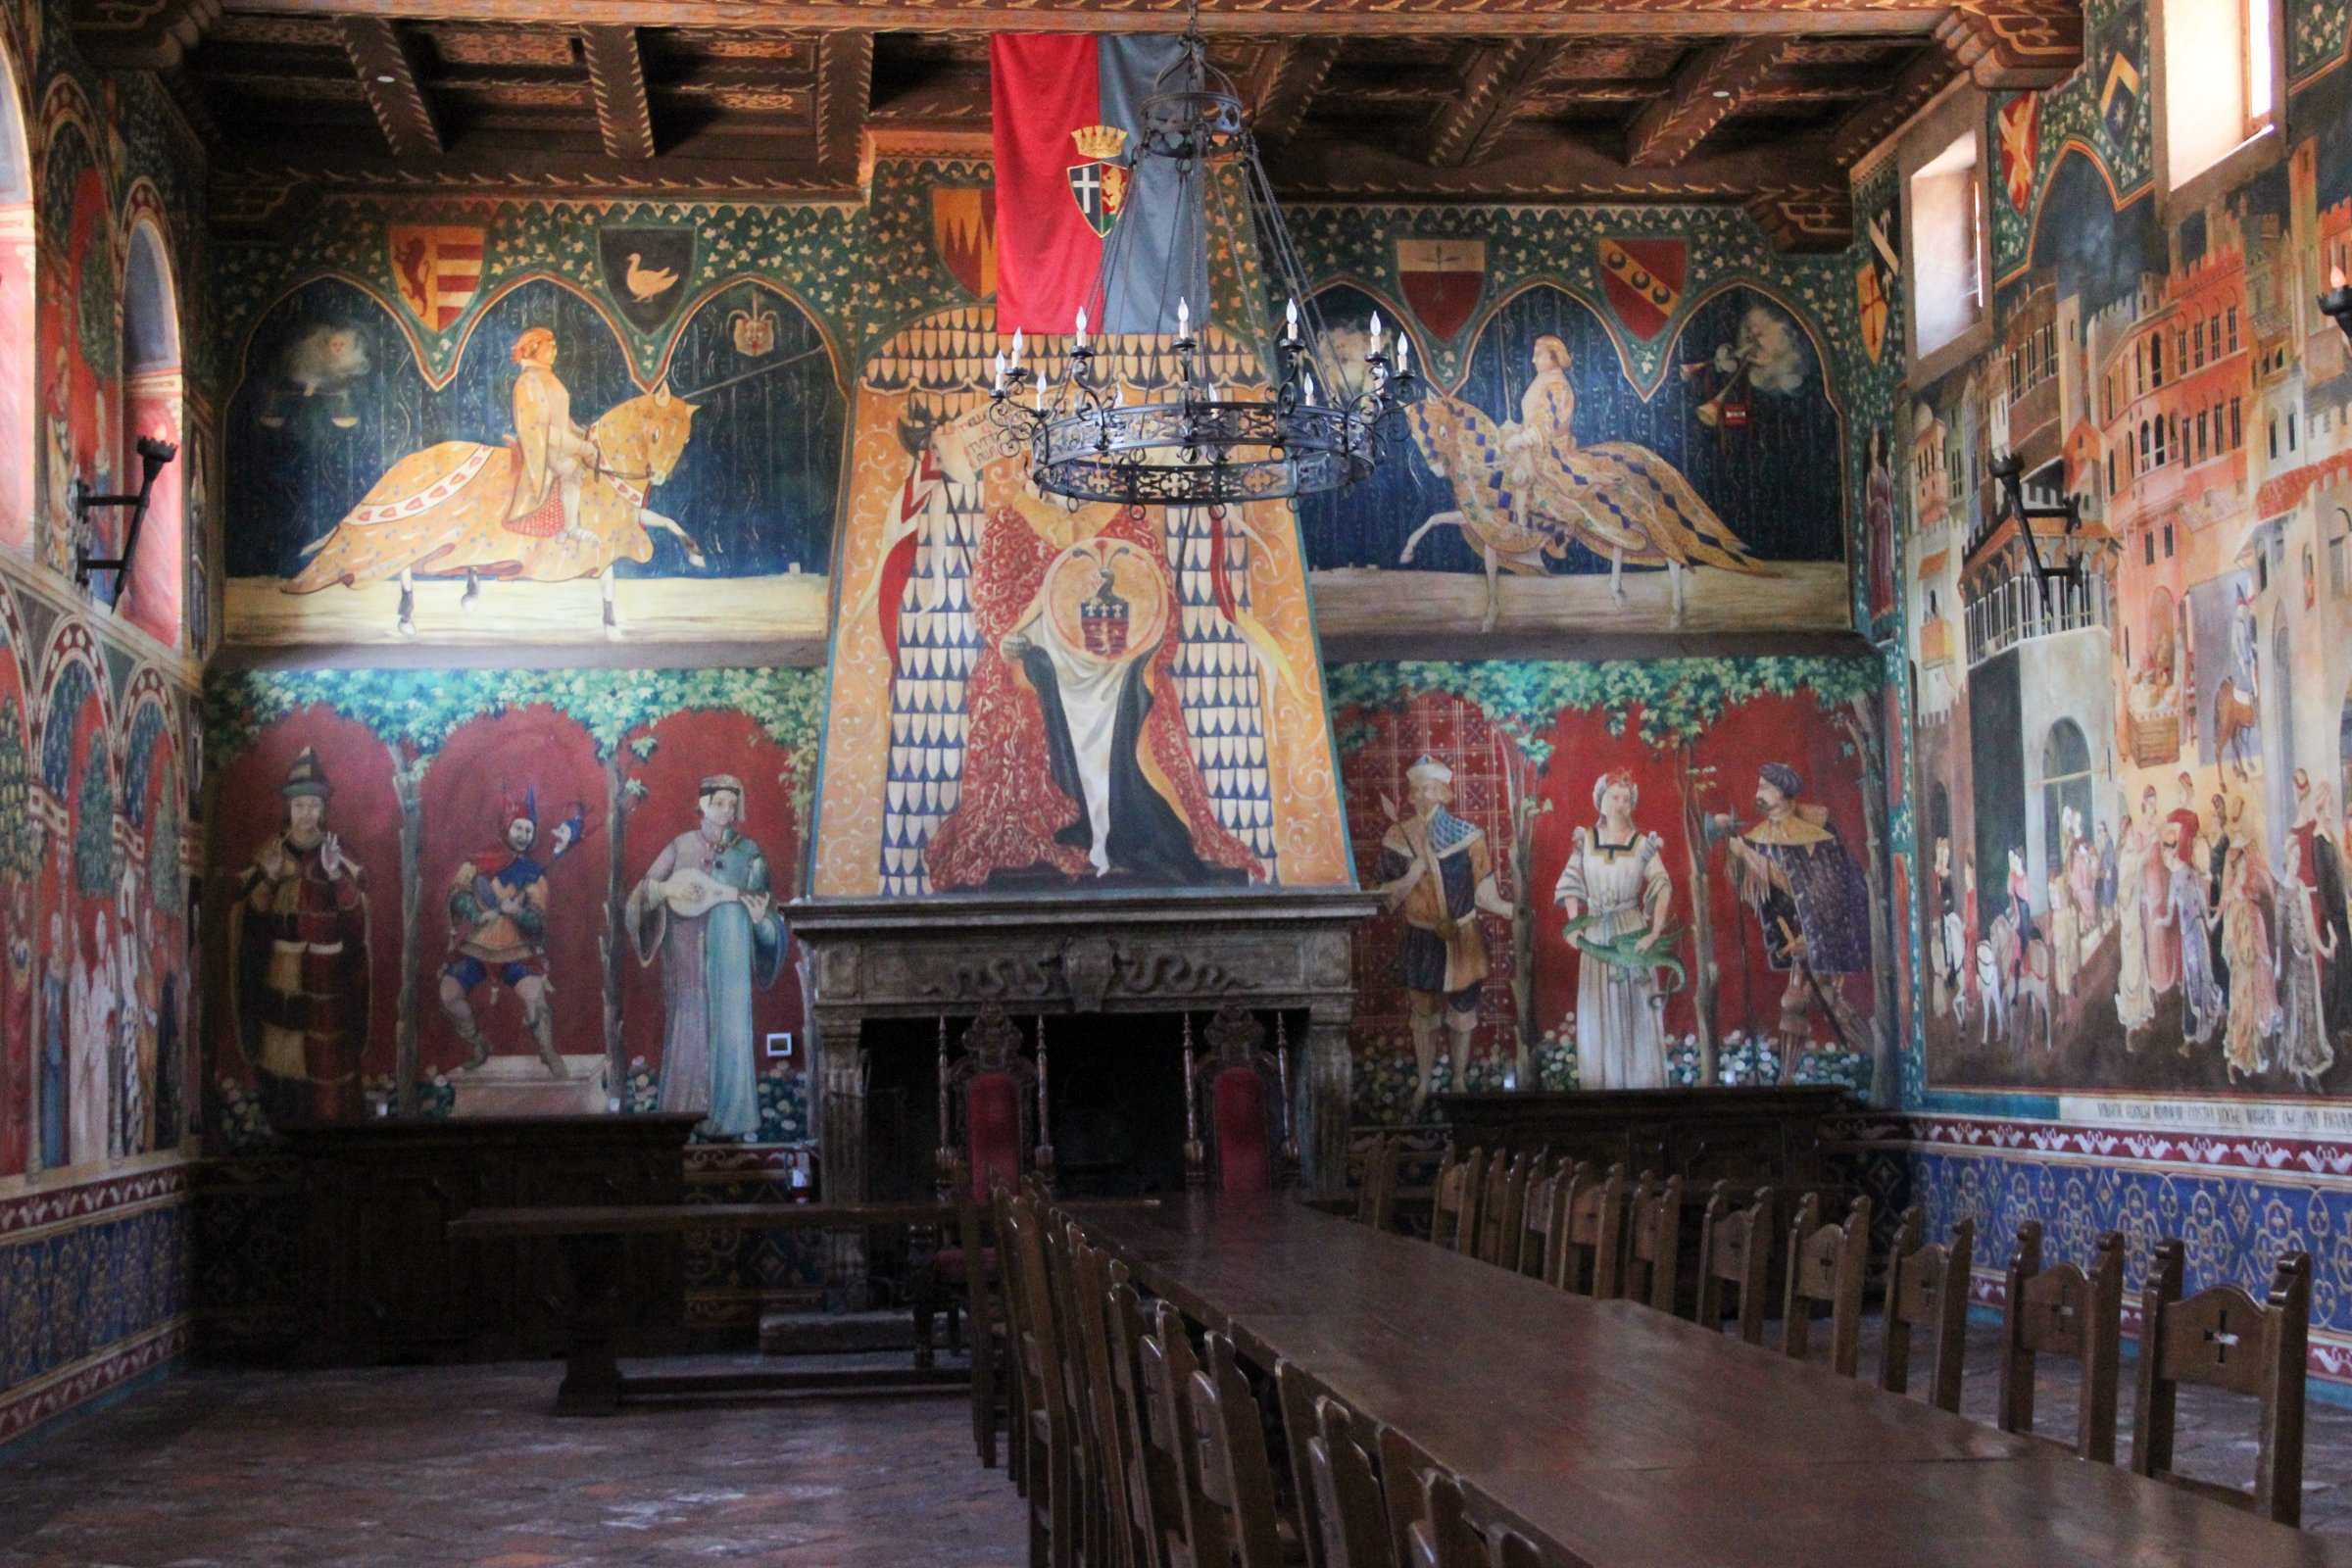 Table in Medieval Banquet Hall